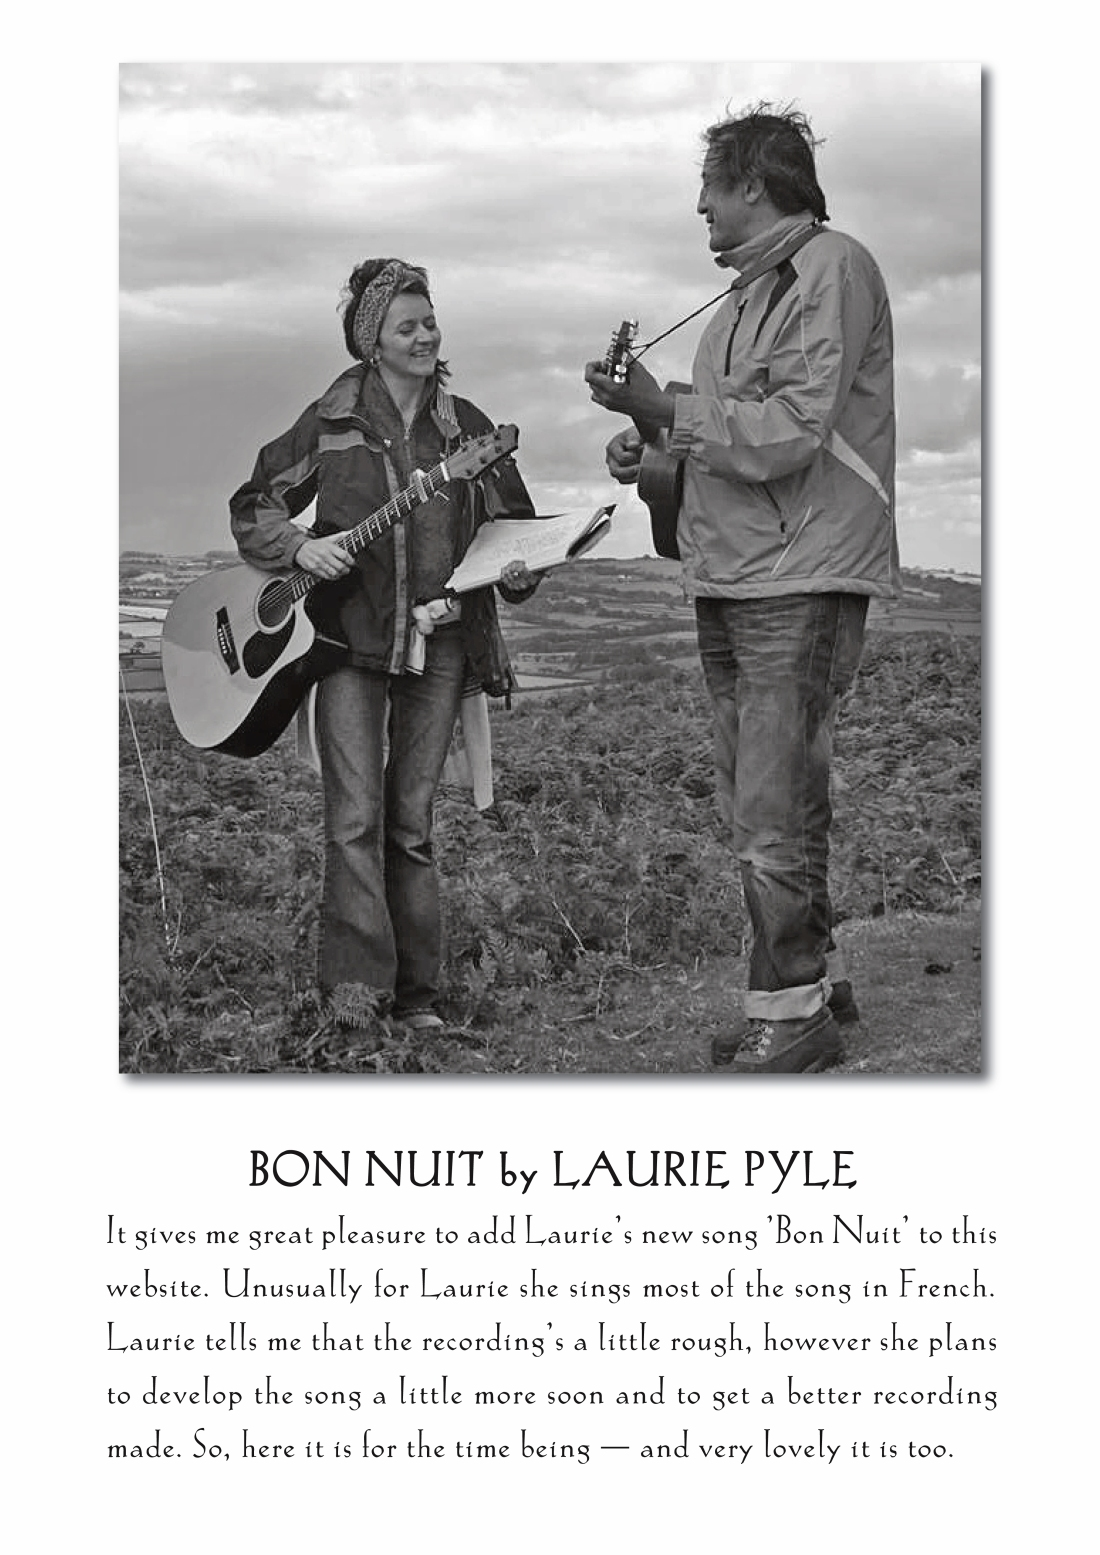 BON NUIT by LAURIE PYLE copy